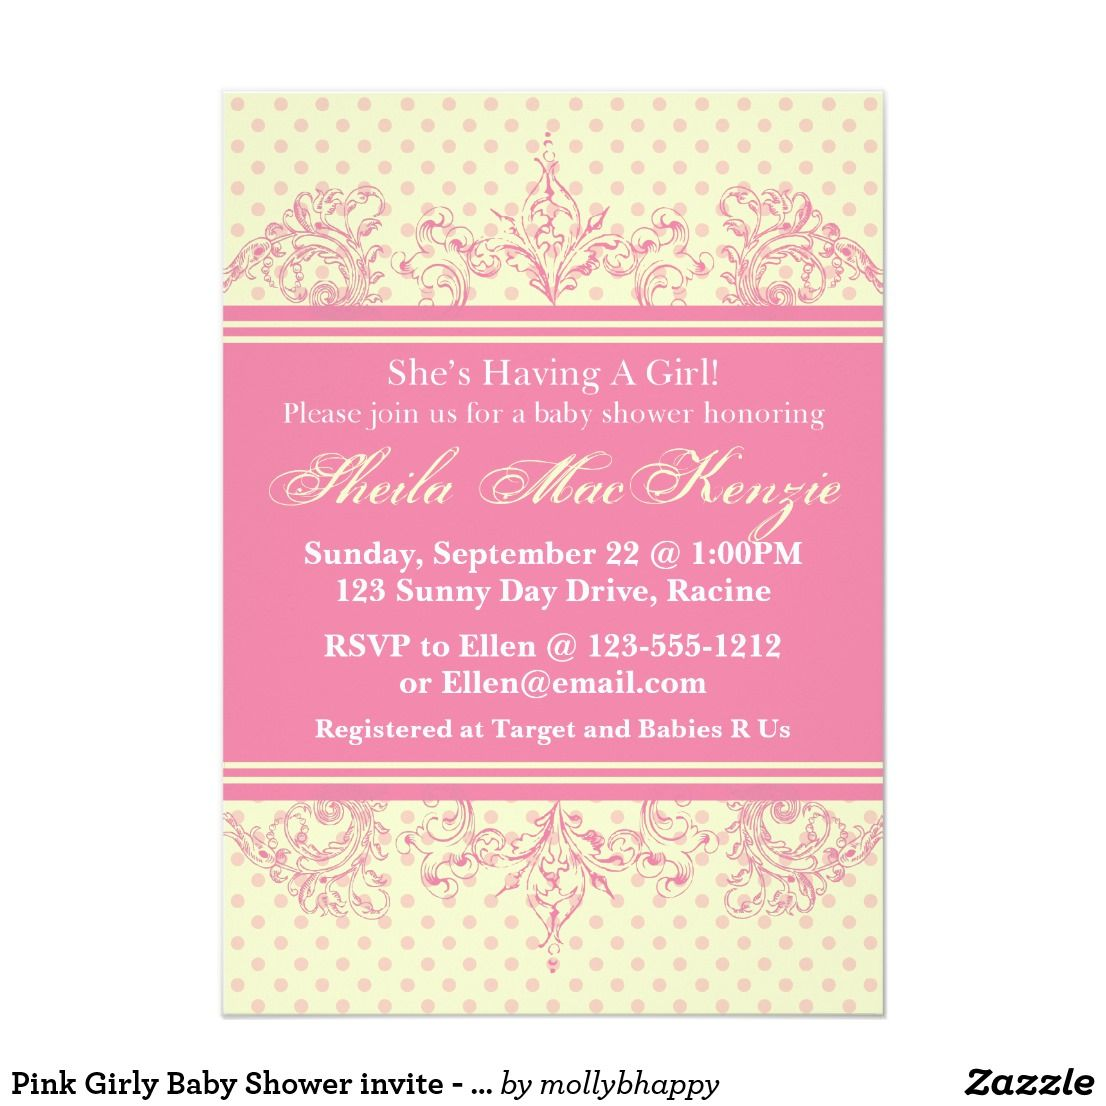 Pink Girly Baby Shower invite - customize This is a cute baby shower ...